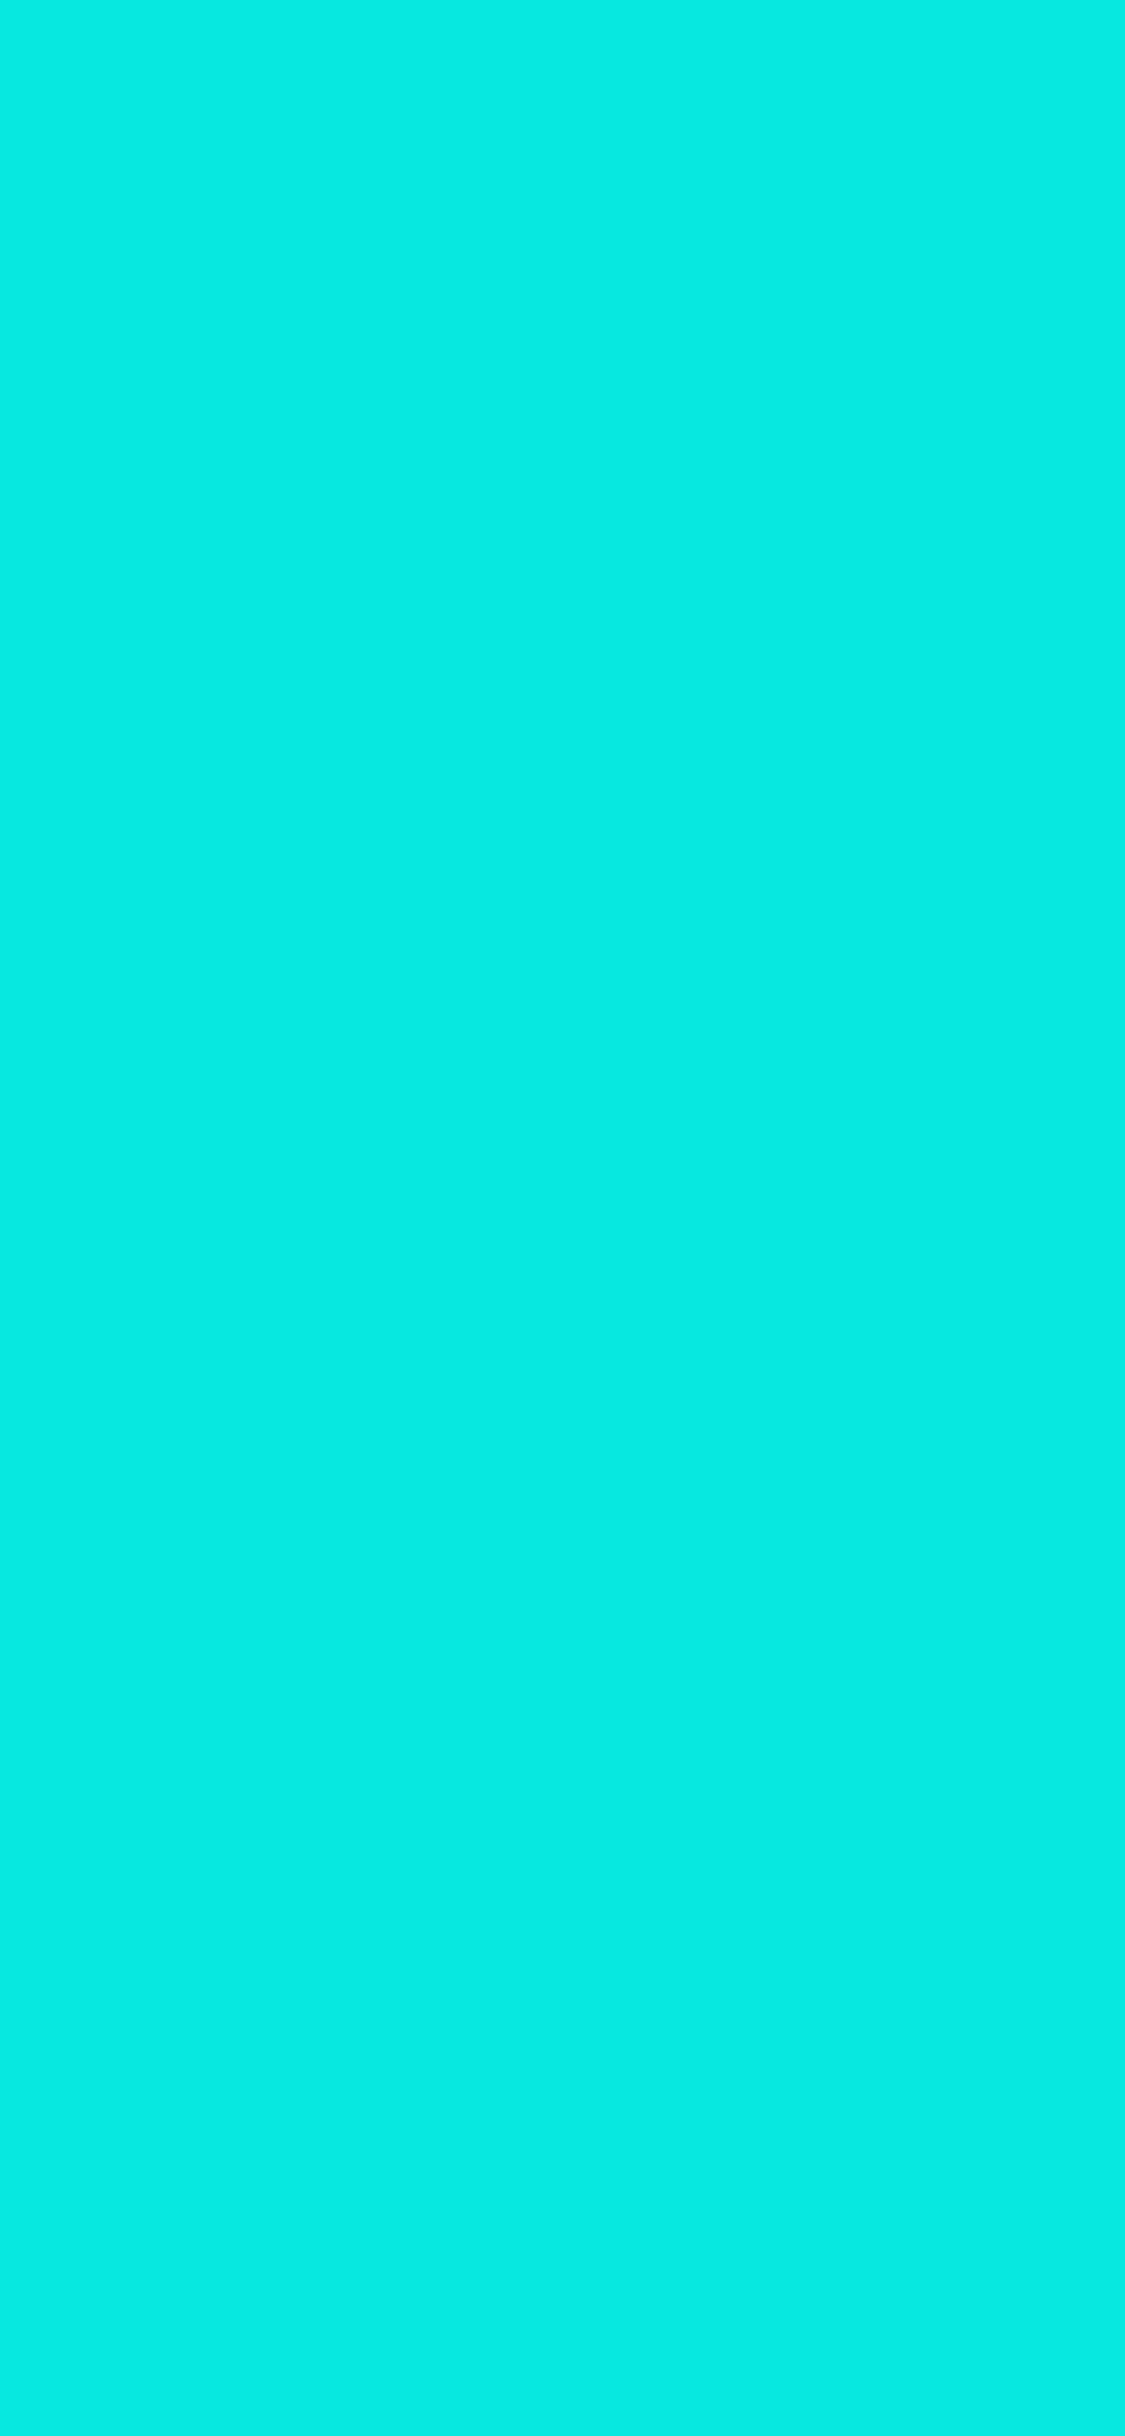 1125x2436 Bright Turquoise Solid Color Background